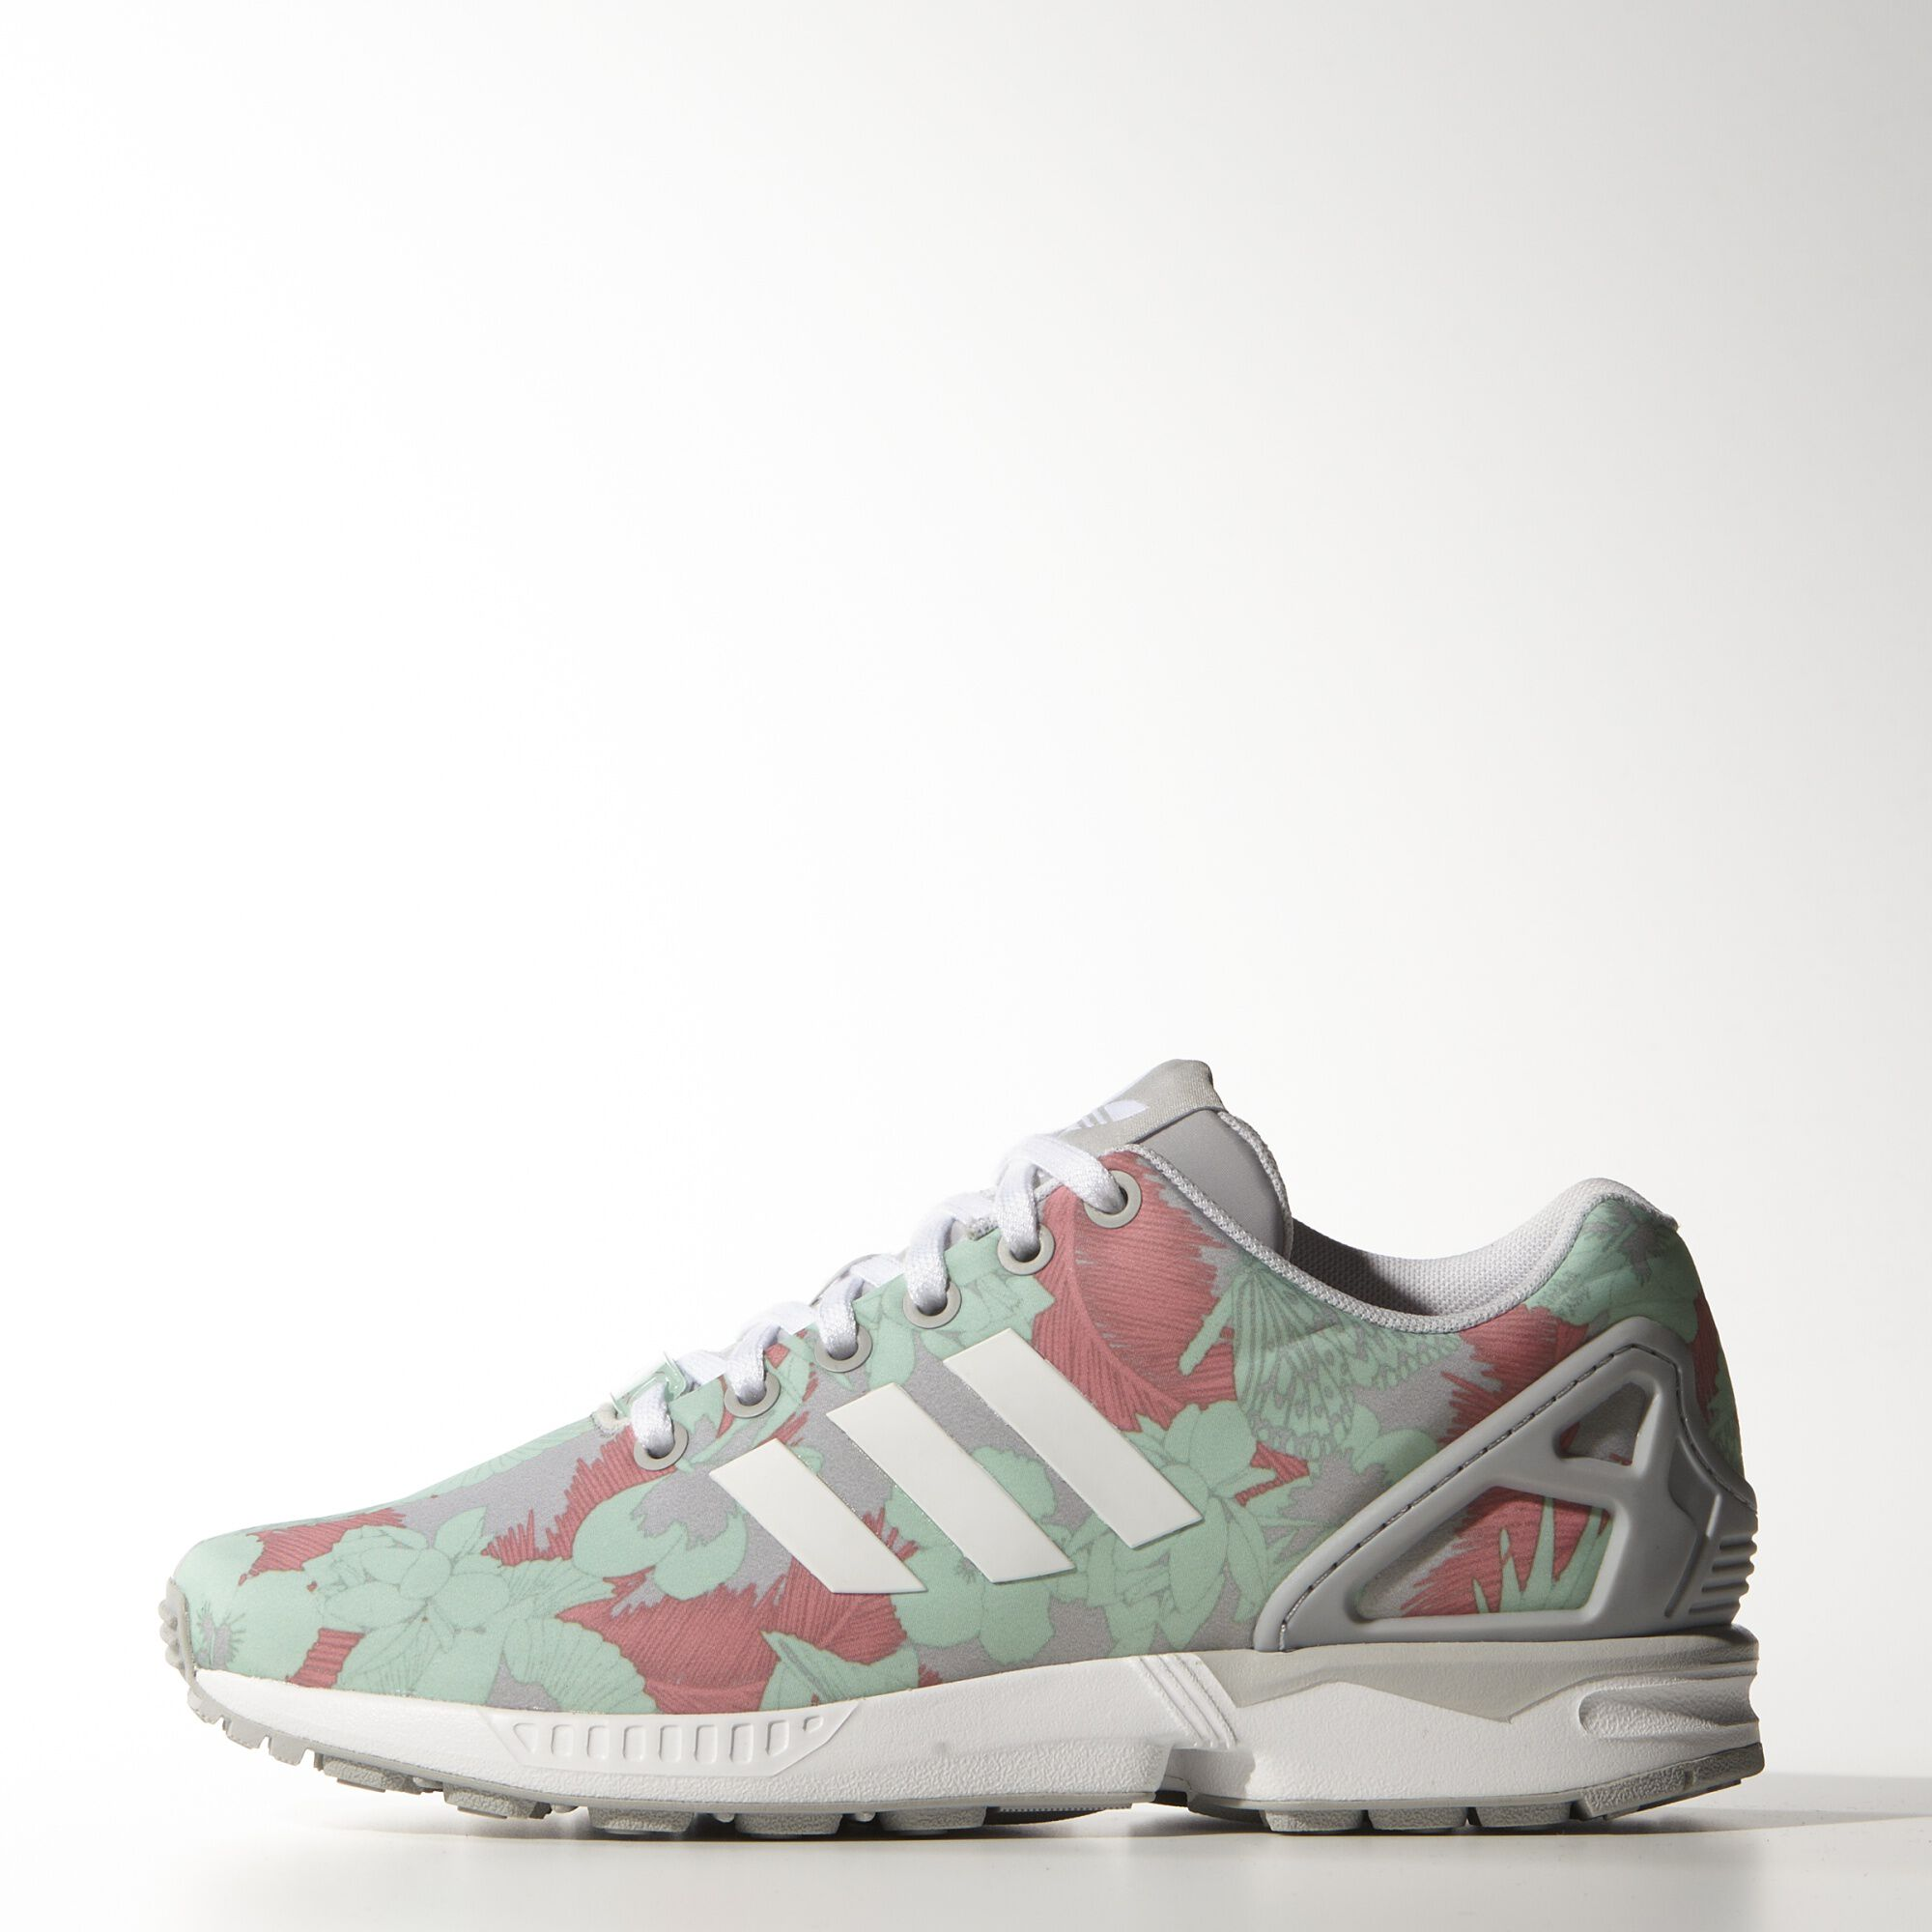 Flux Adidas Mujer